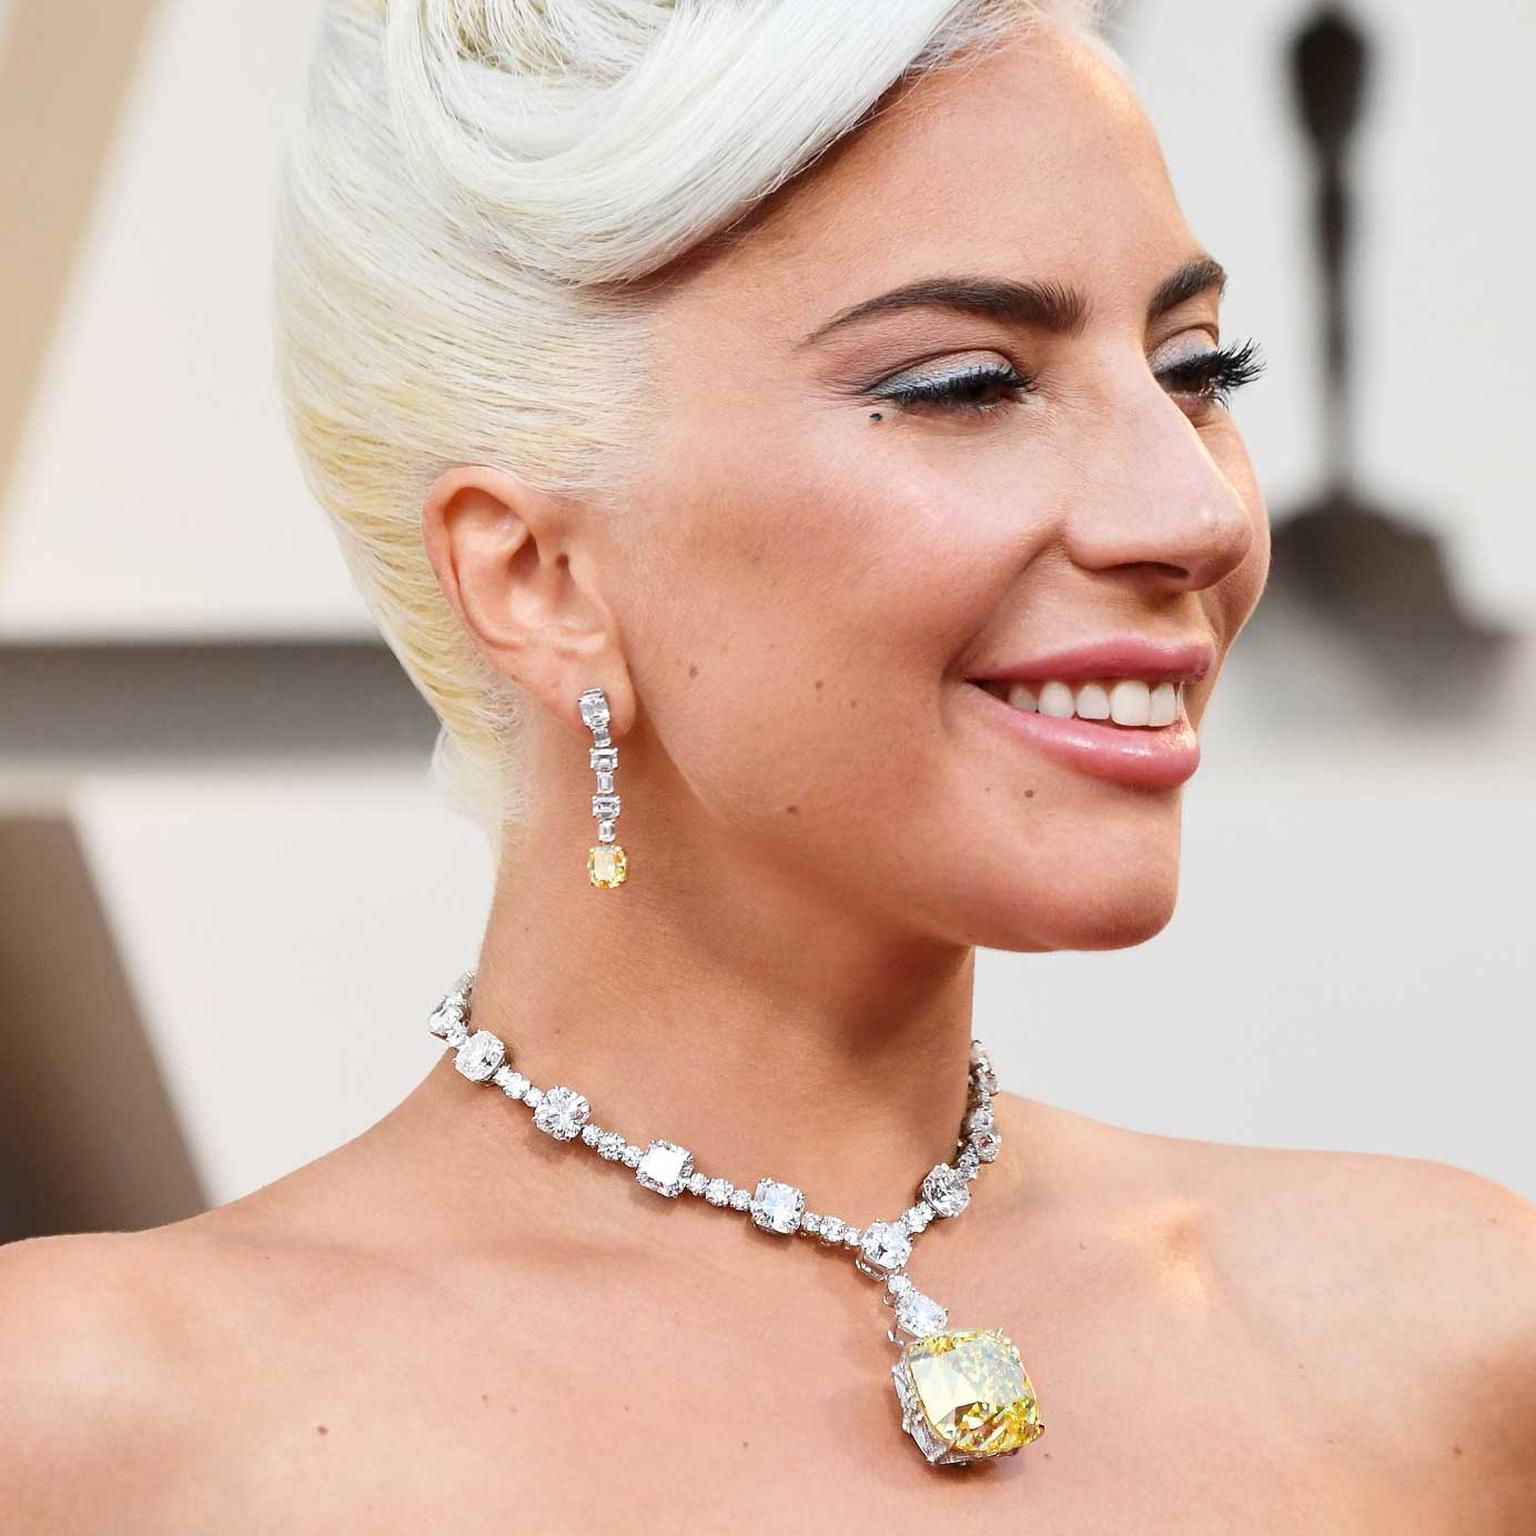 Lady Gaga Oscars close up Tiffany diamond GettyImages